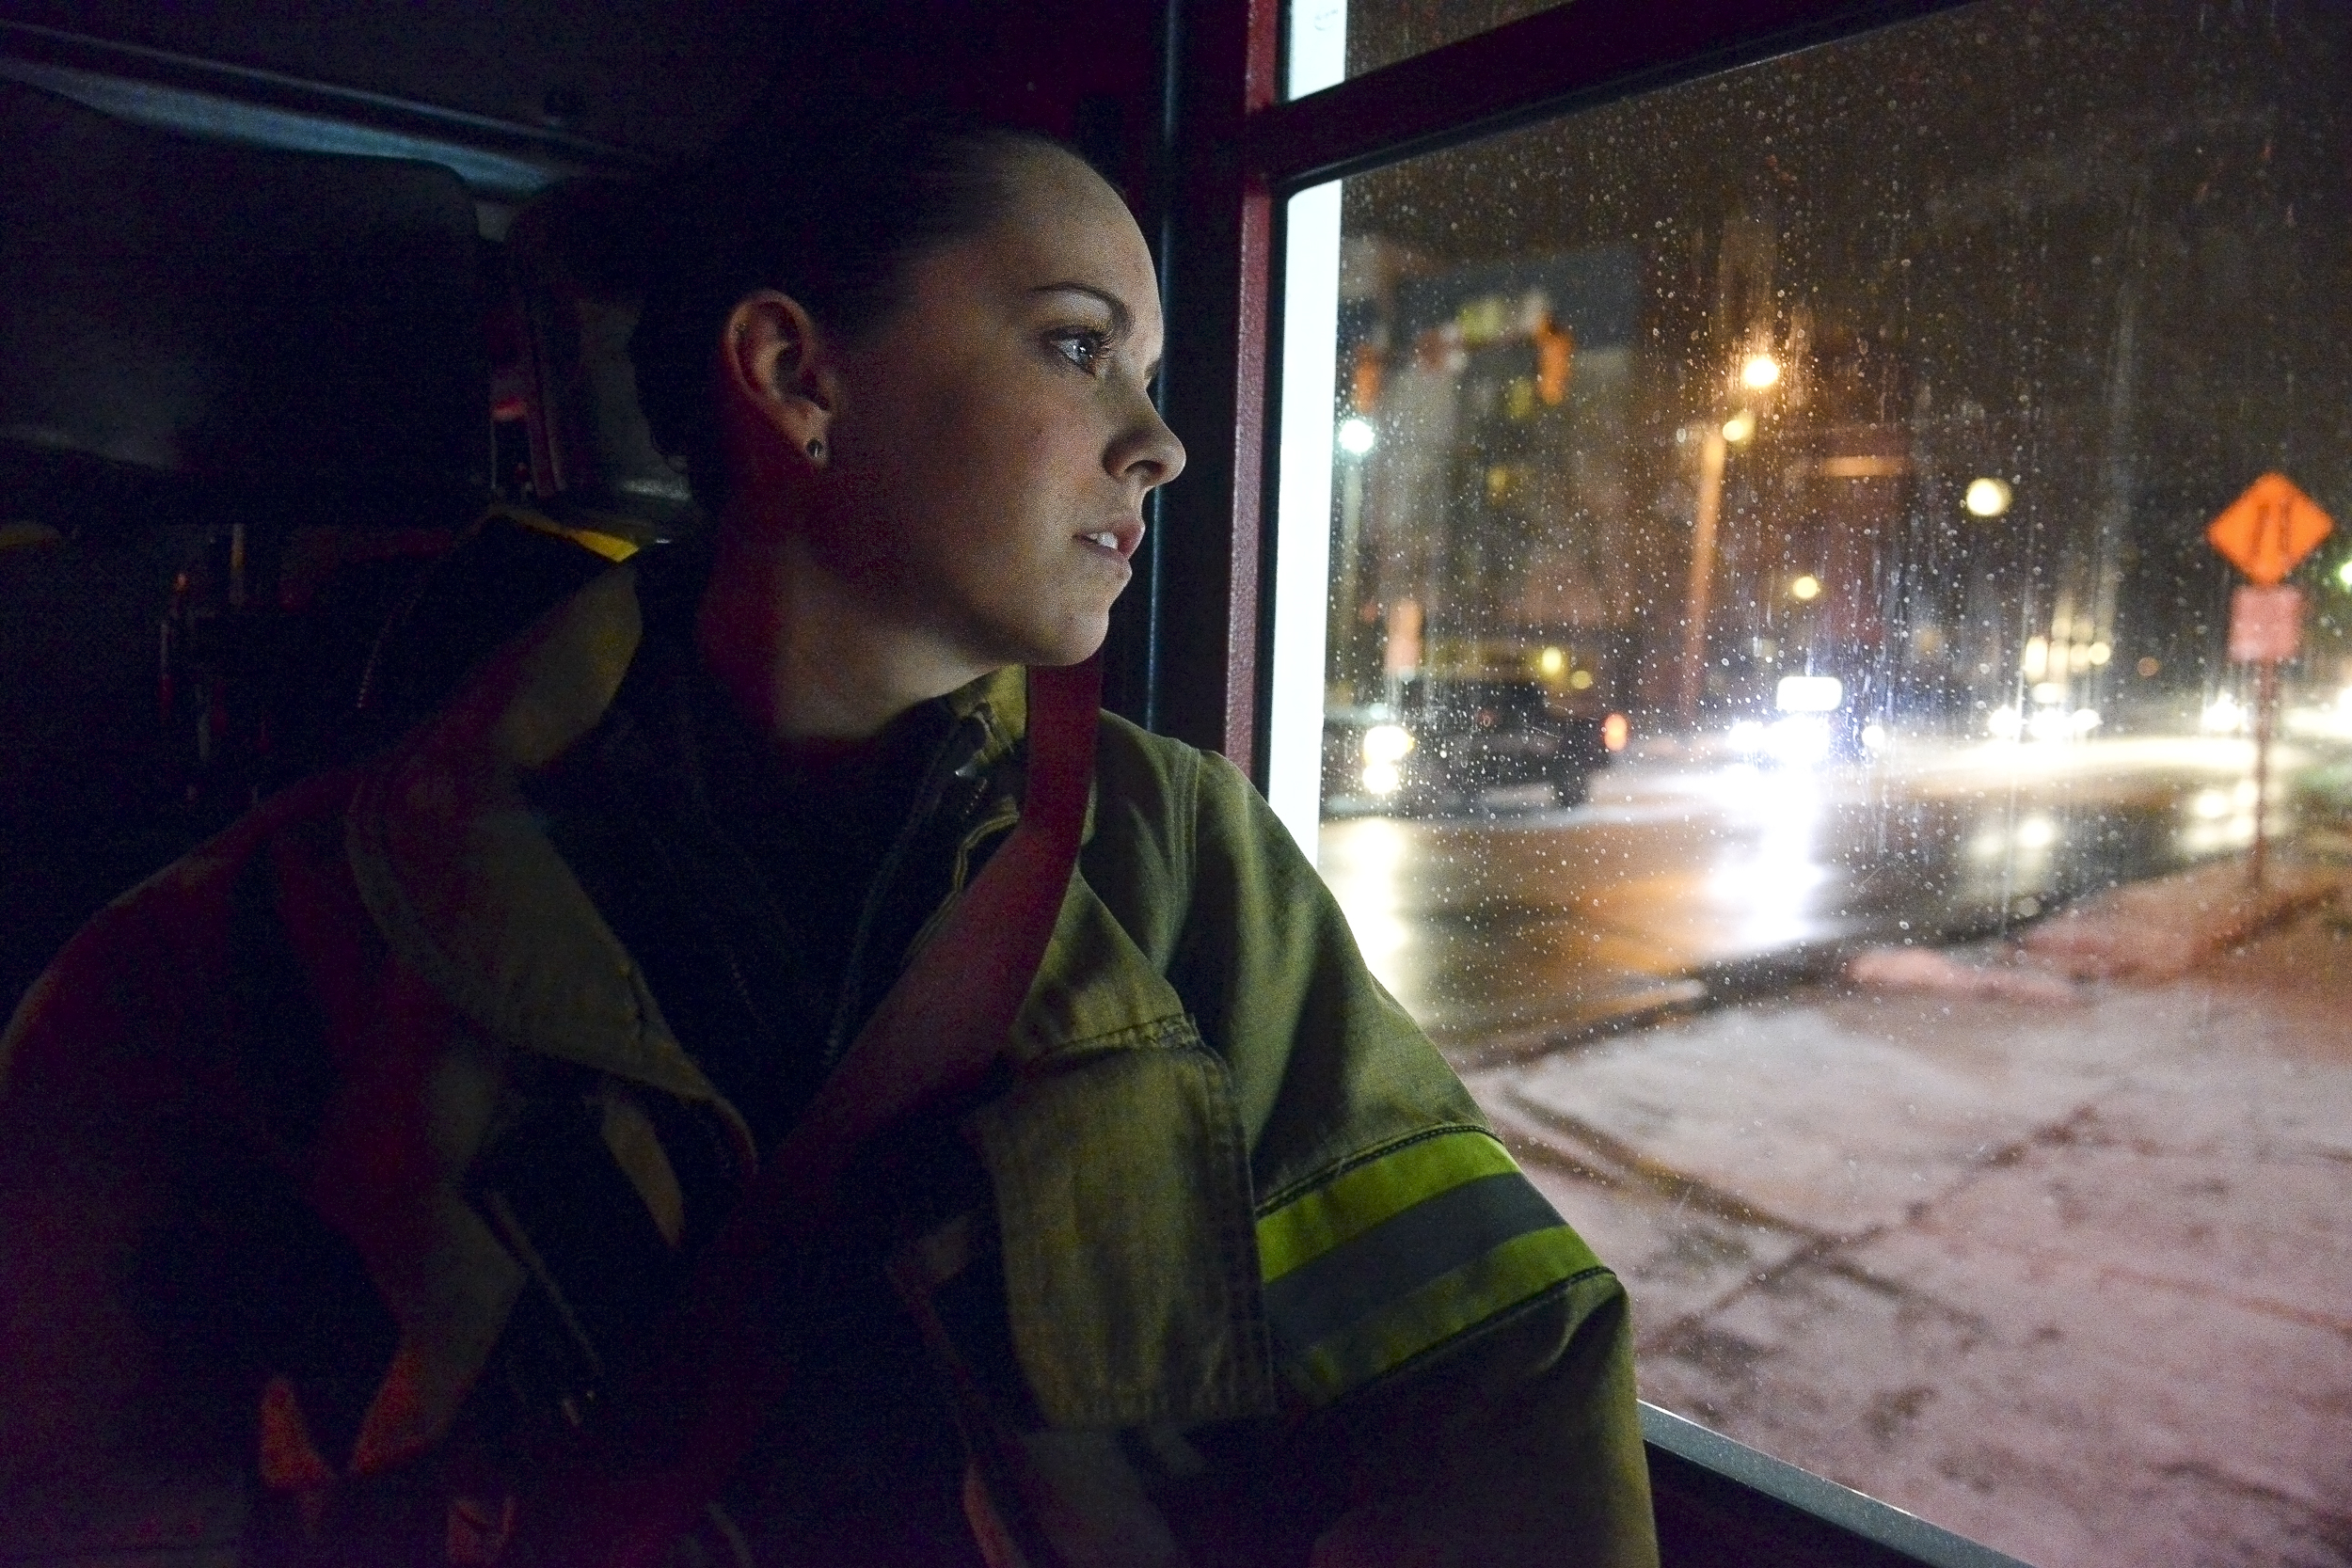 Ali Warren, a 20-year-old volunteer firefighter for the Alpha Fire Company, watches out the window of the fire engine as they arrive back to the station on South Atherton Street in State College, Pa. Warren, a State College local and self-published writer, has been volunteering for the company since she was 16.